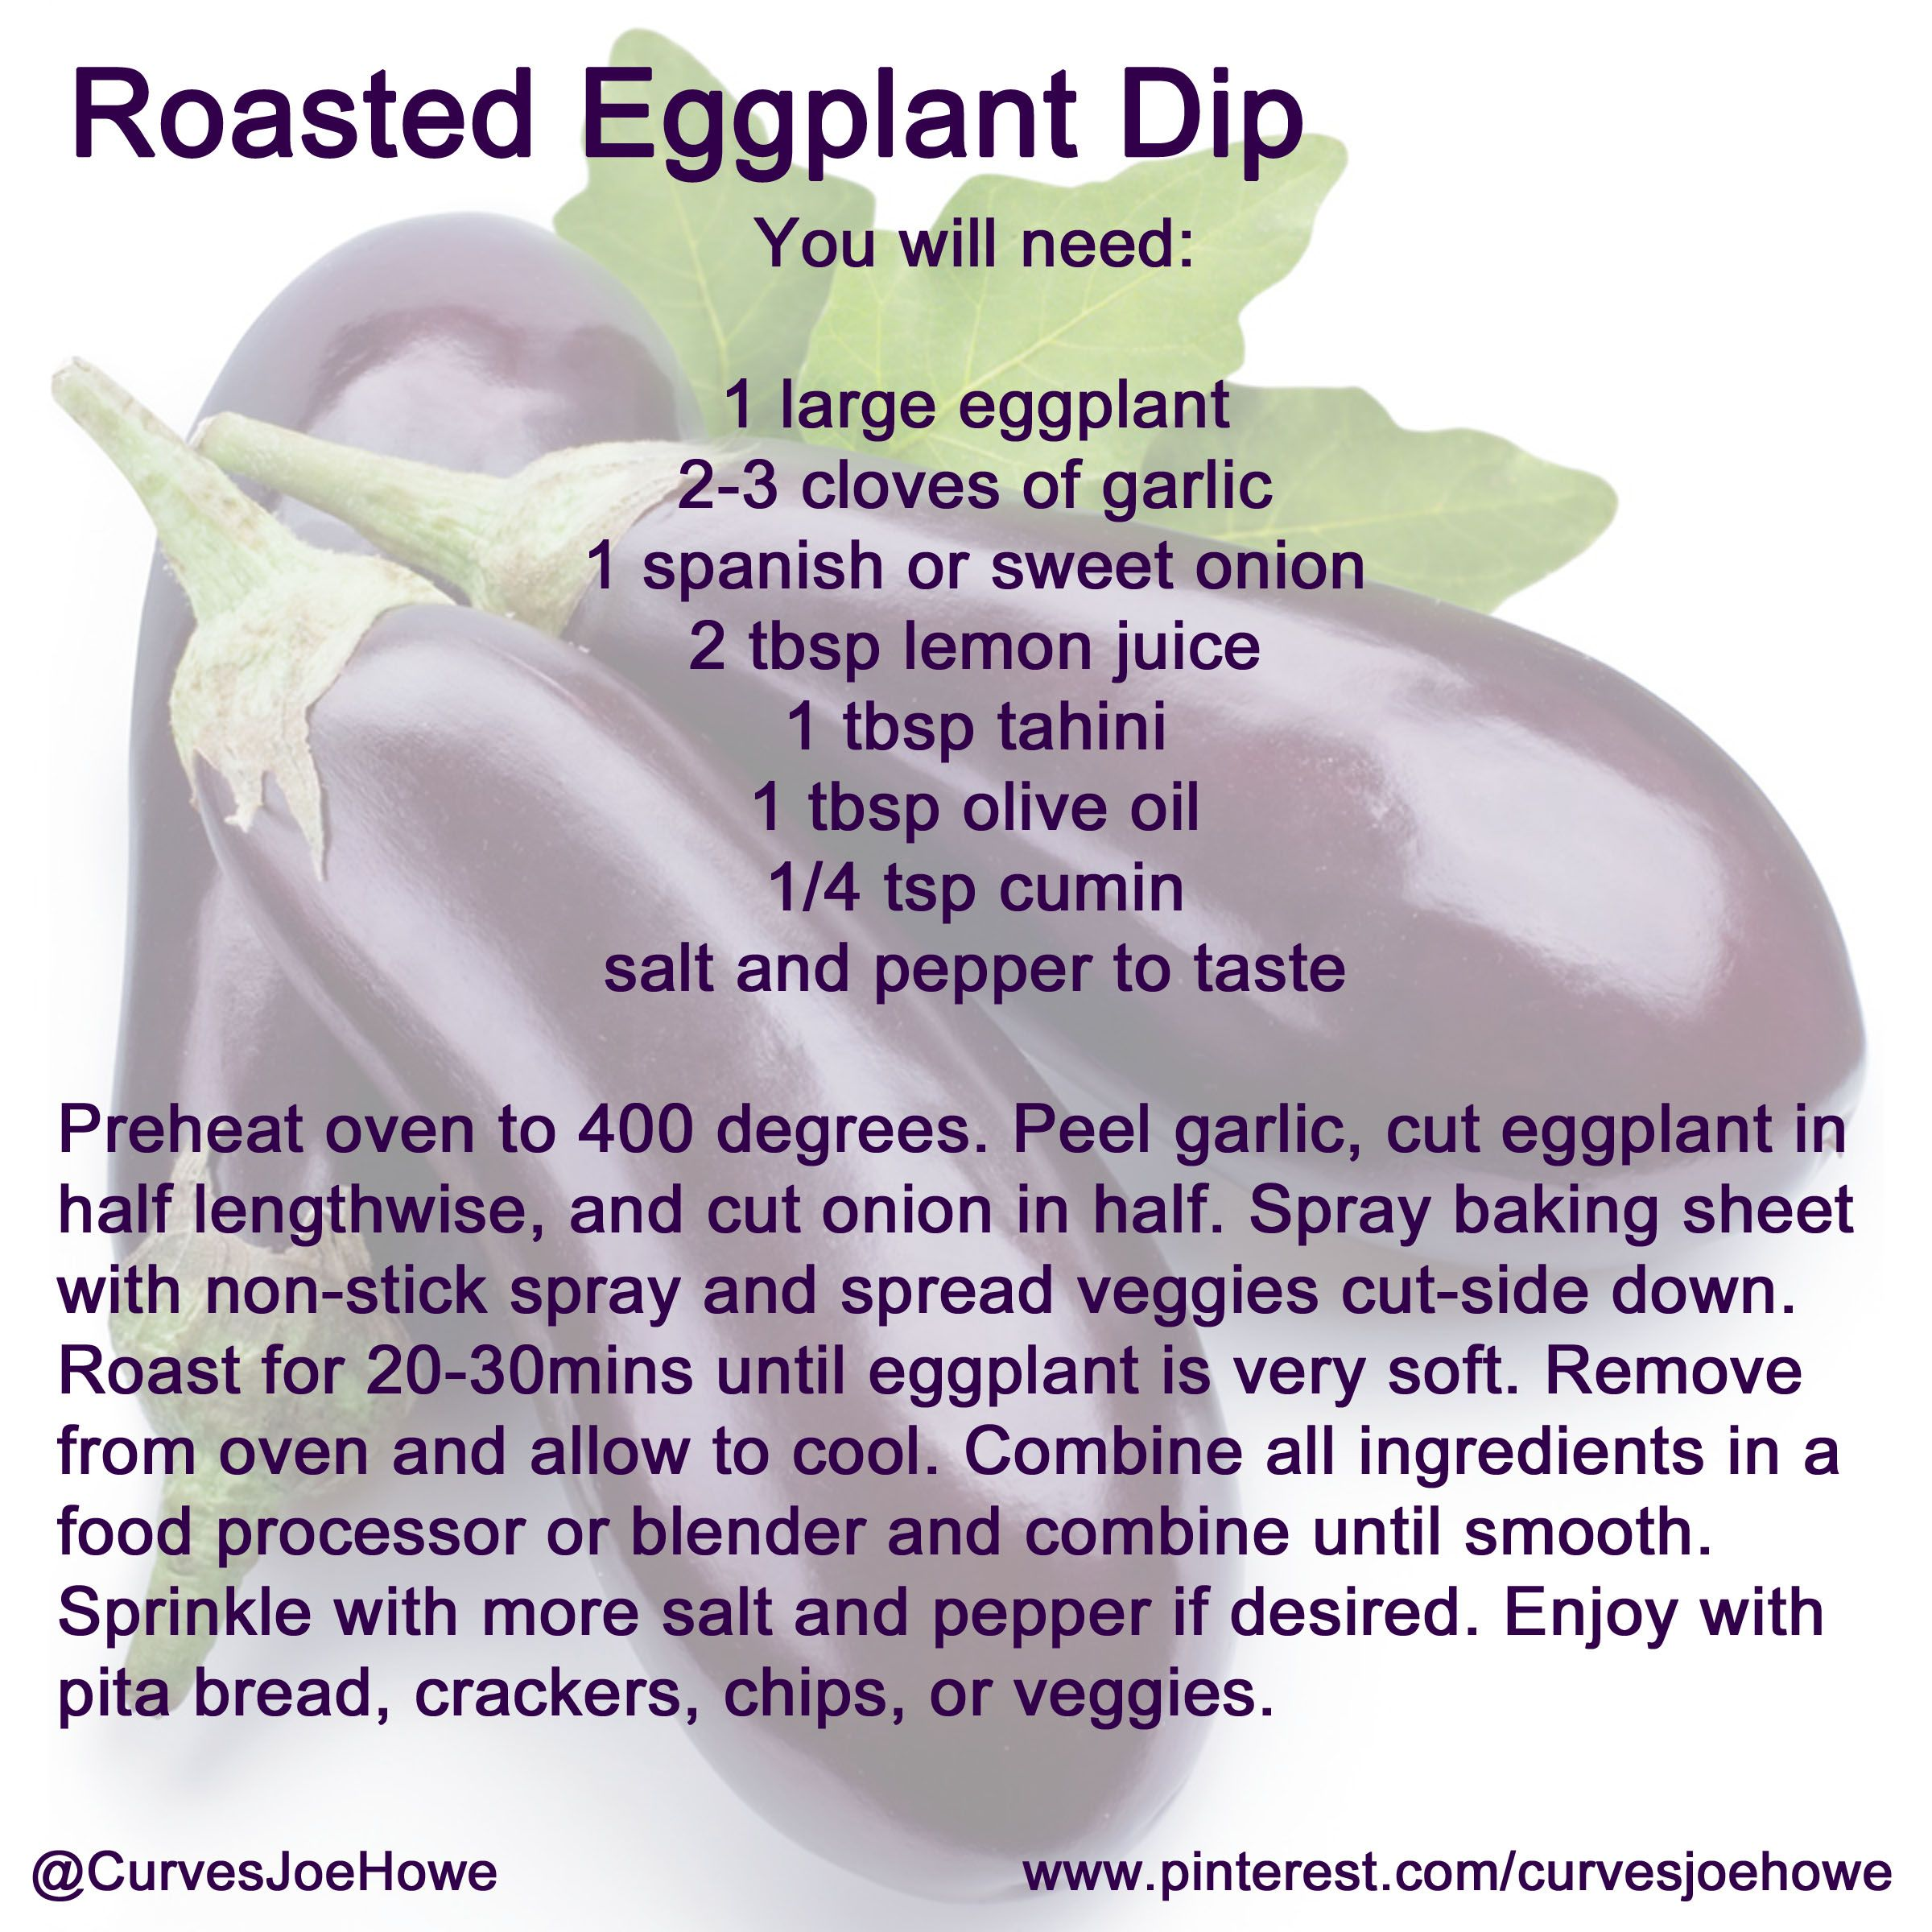 Looking for a healthy appetizer to serve at your next dinner party? How about homemade baba ganouj aka Roasted Eggplant Dip? It tastes like Caesar dressing, and goes with pita bread, crackers, veggies, and more! You can even use it as a spread for wraps and sandwiches for lunch.